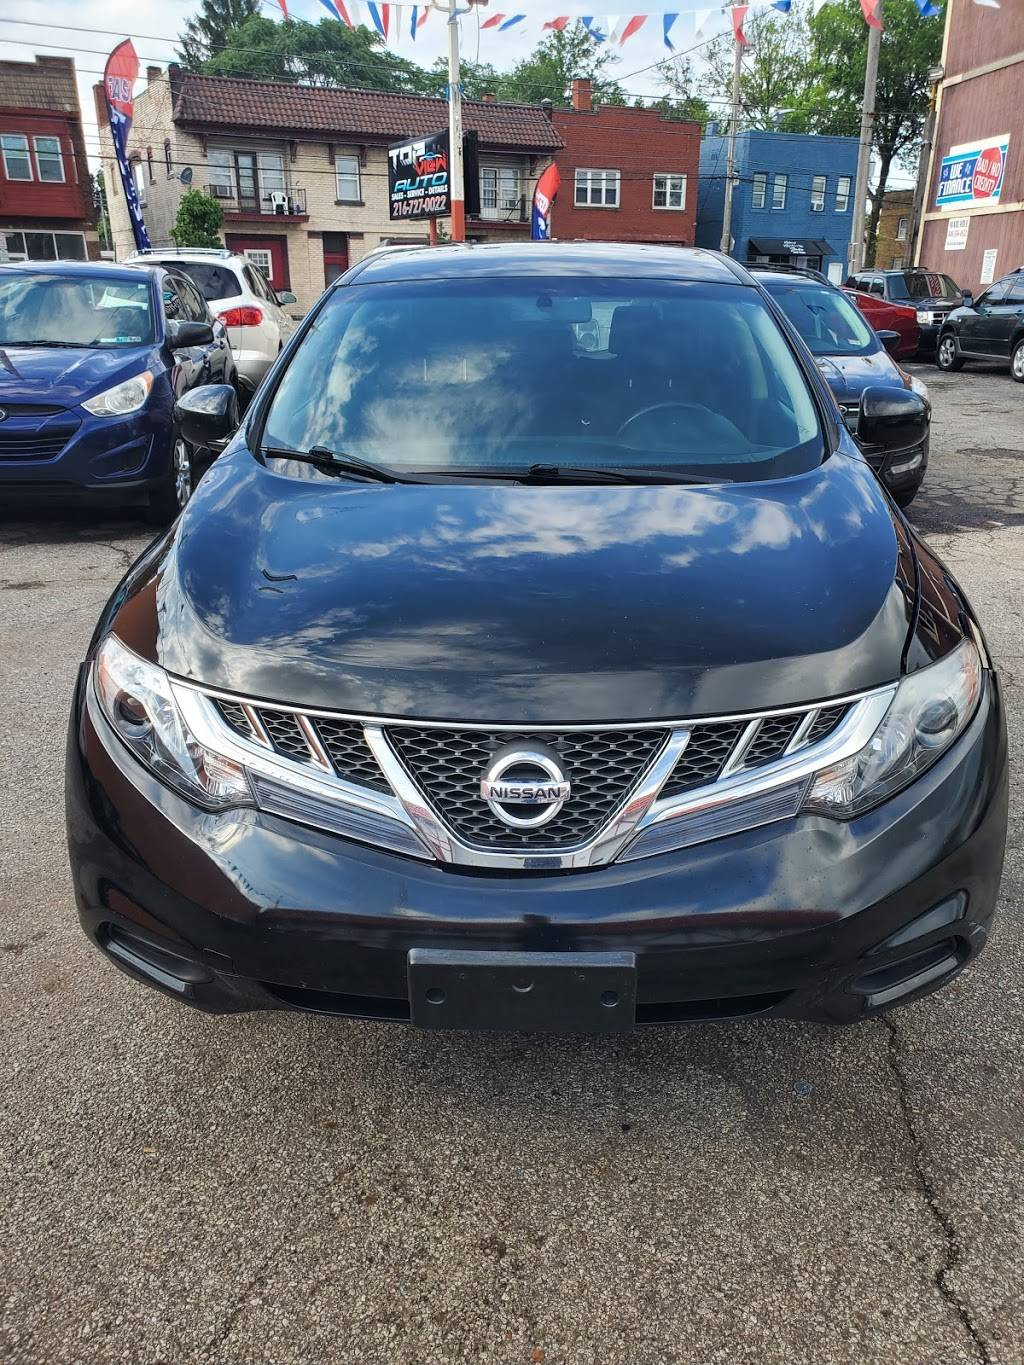 Top View Auto - car dealer  | Photo 5 of 9 | Address: 12715 Lorain Ave, Cleveland, OH 44111, USA | Phone: (216) 727-0022